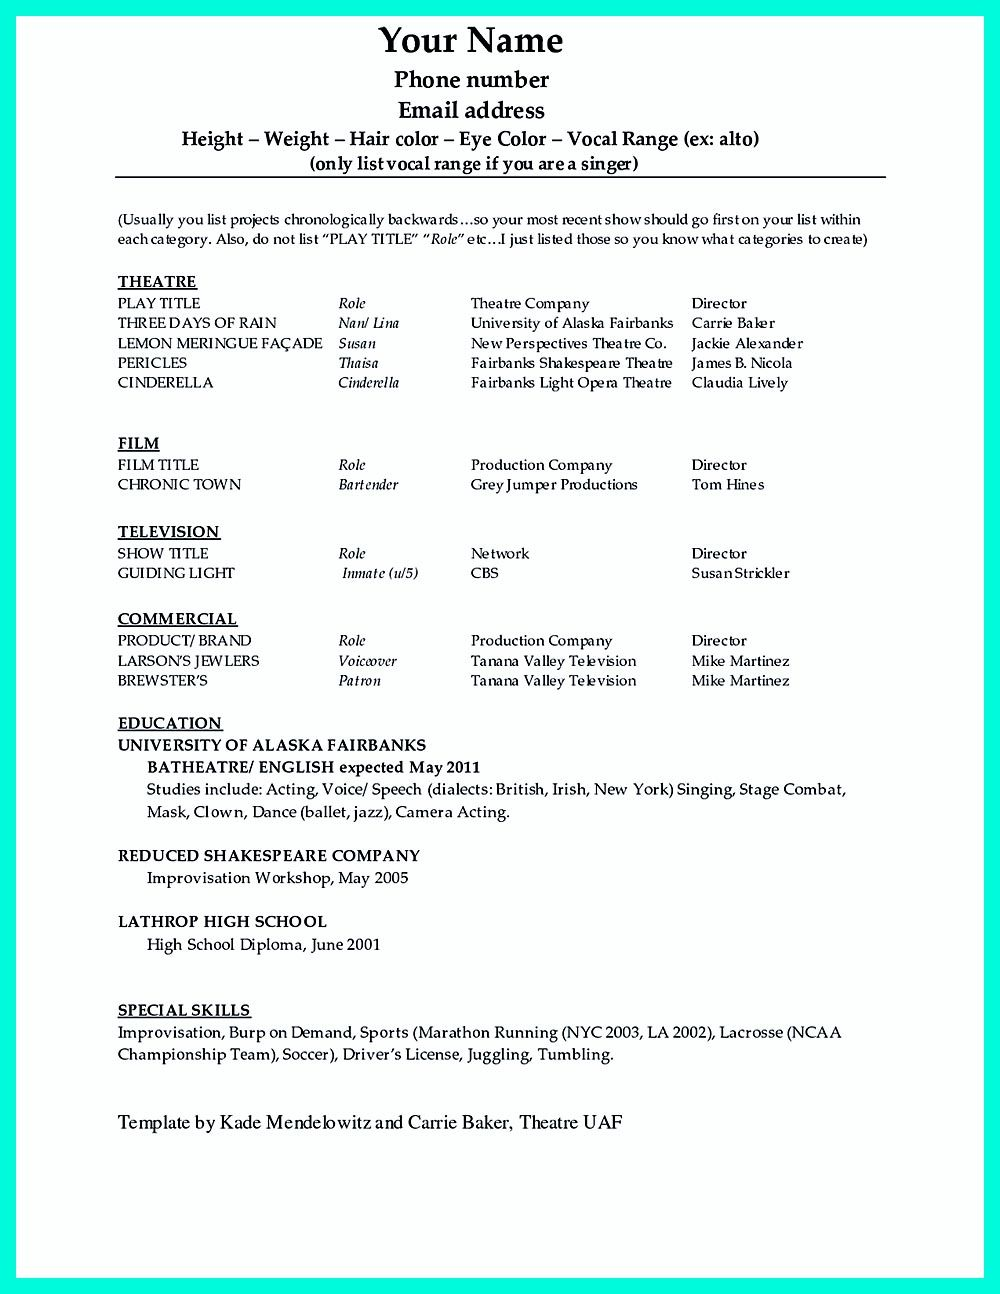 Pin On Resume Sample Template And Format In 2018 Pinterest